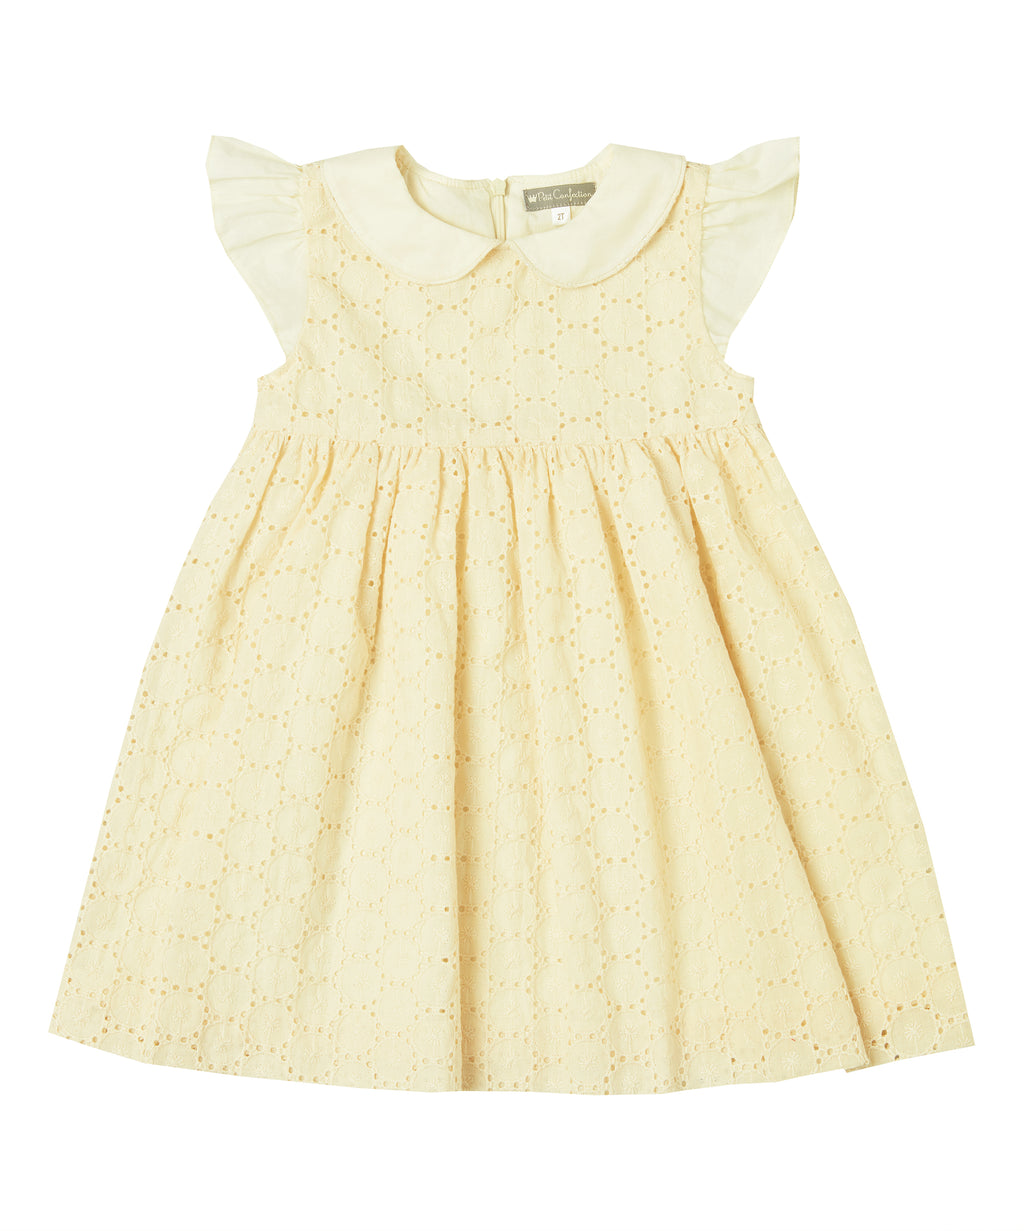 Pale Yellow Eyelet Dress